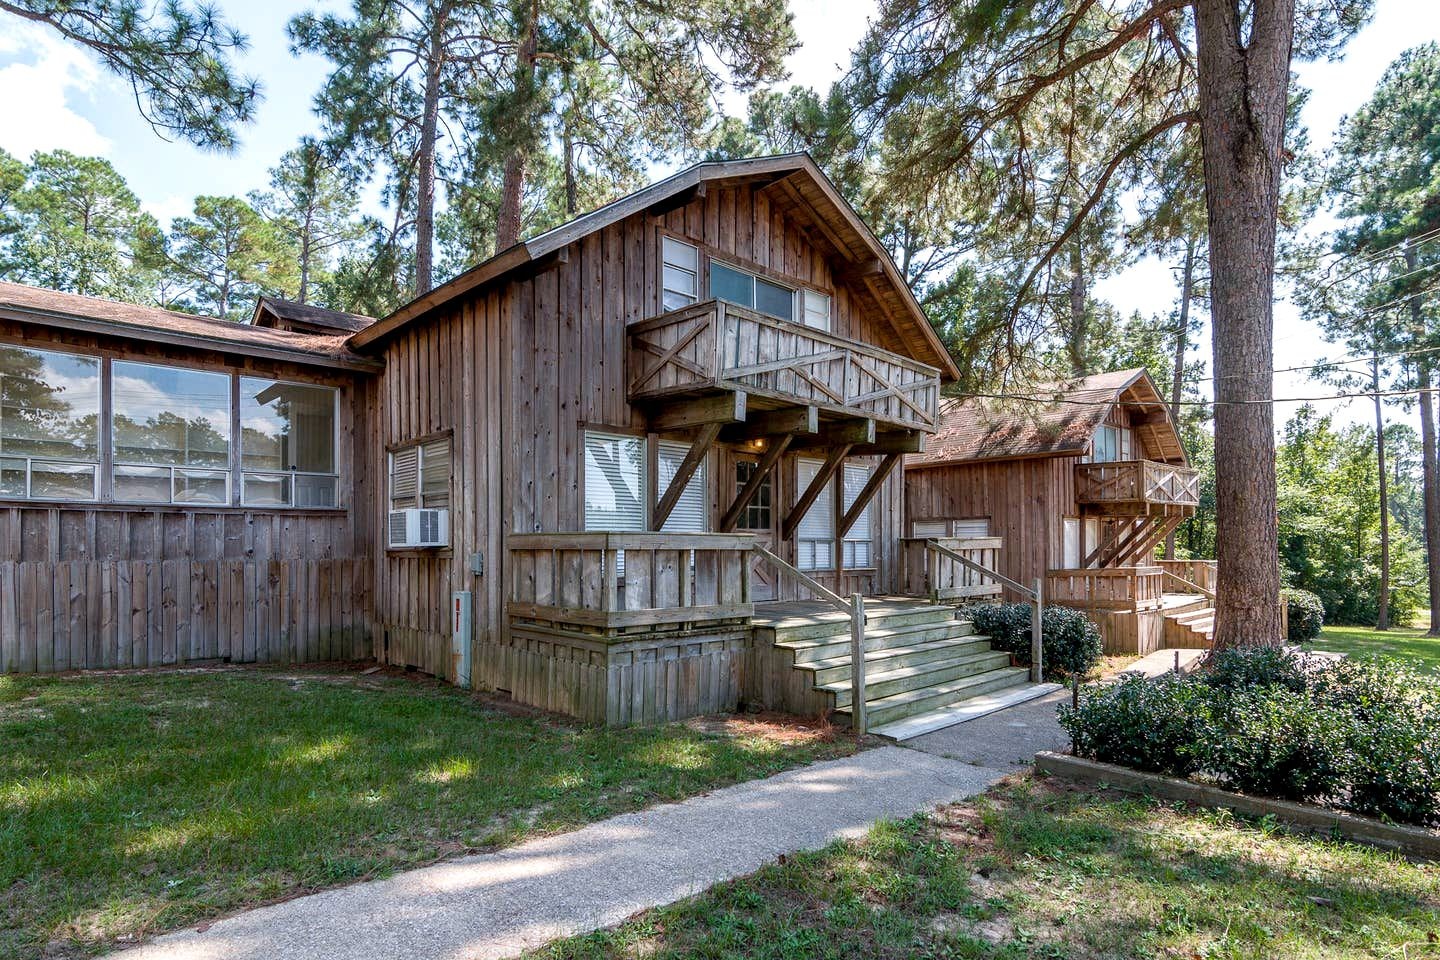 Family-friendly cabin rental for a Texas family vacation that you'll never forget.